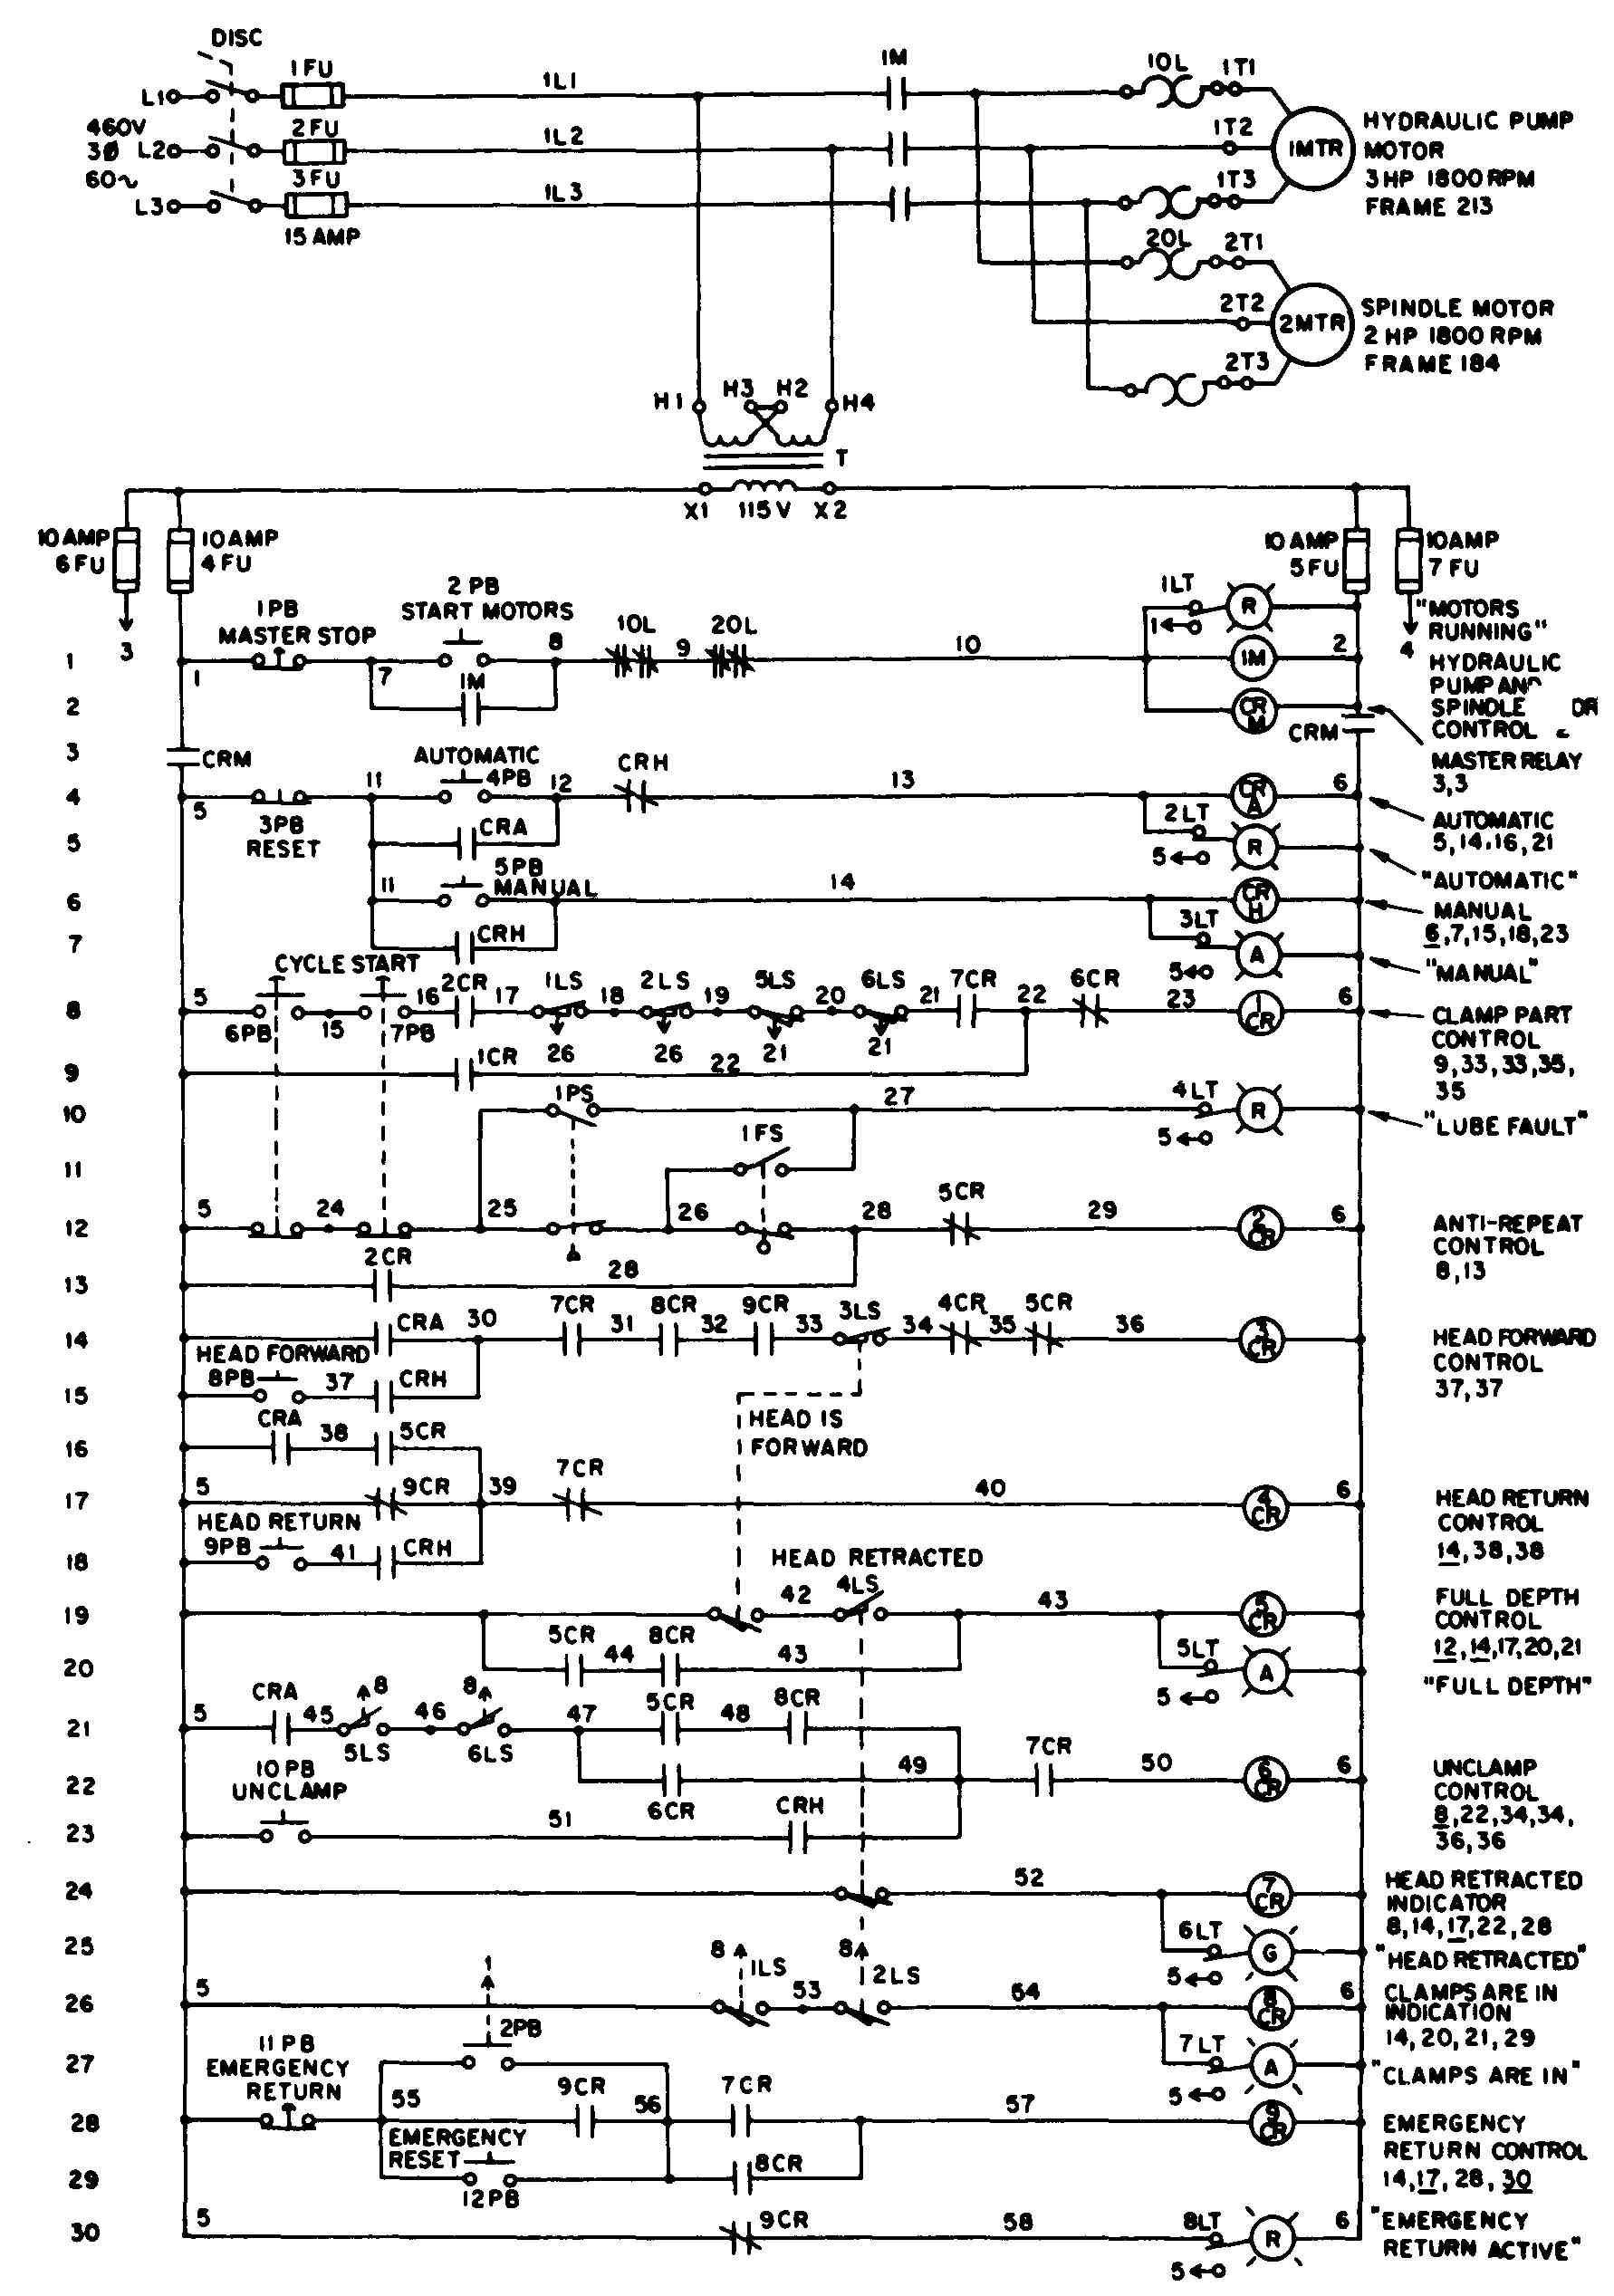 Drafting For Electronics Motors And Control Circuits Part 2 Logic Diagram The Second Rung Of See A Simple Ladder 35 Ungrounded Circuit Joint Industrial Council